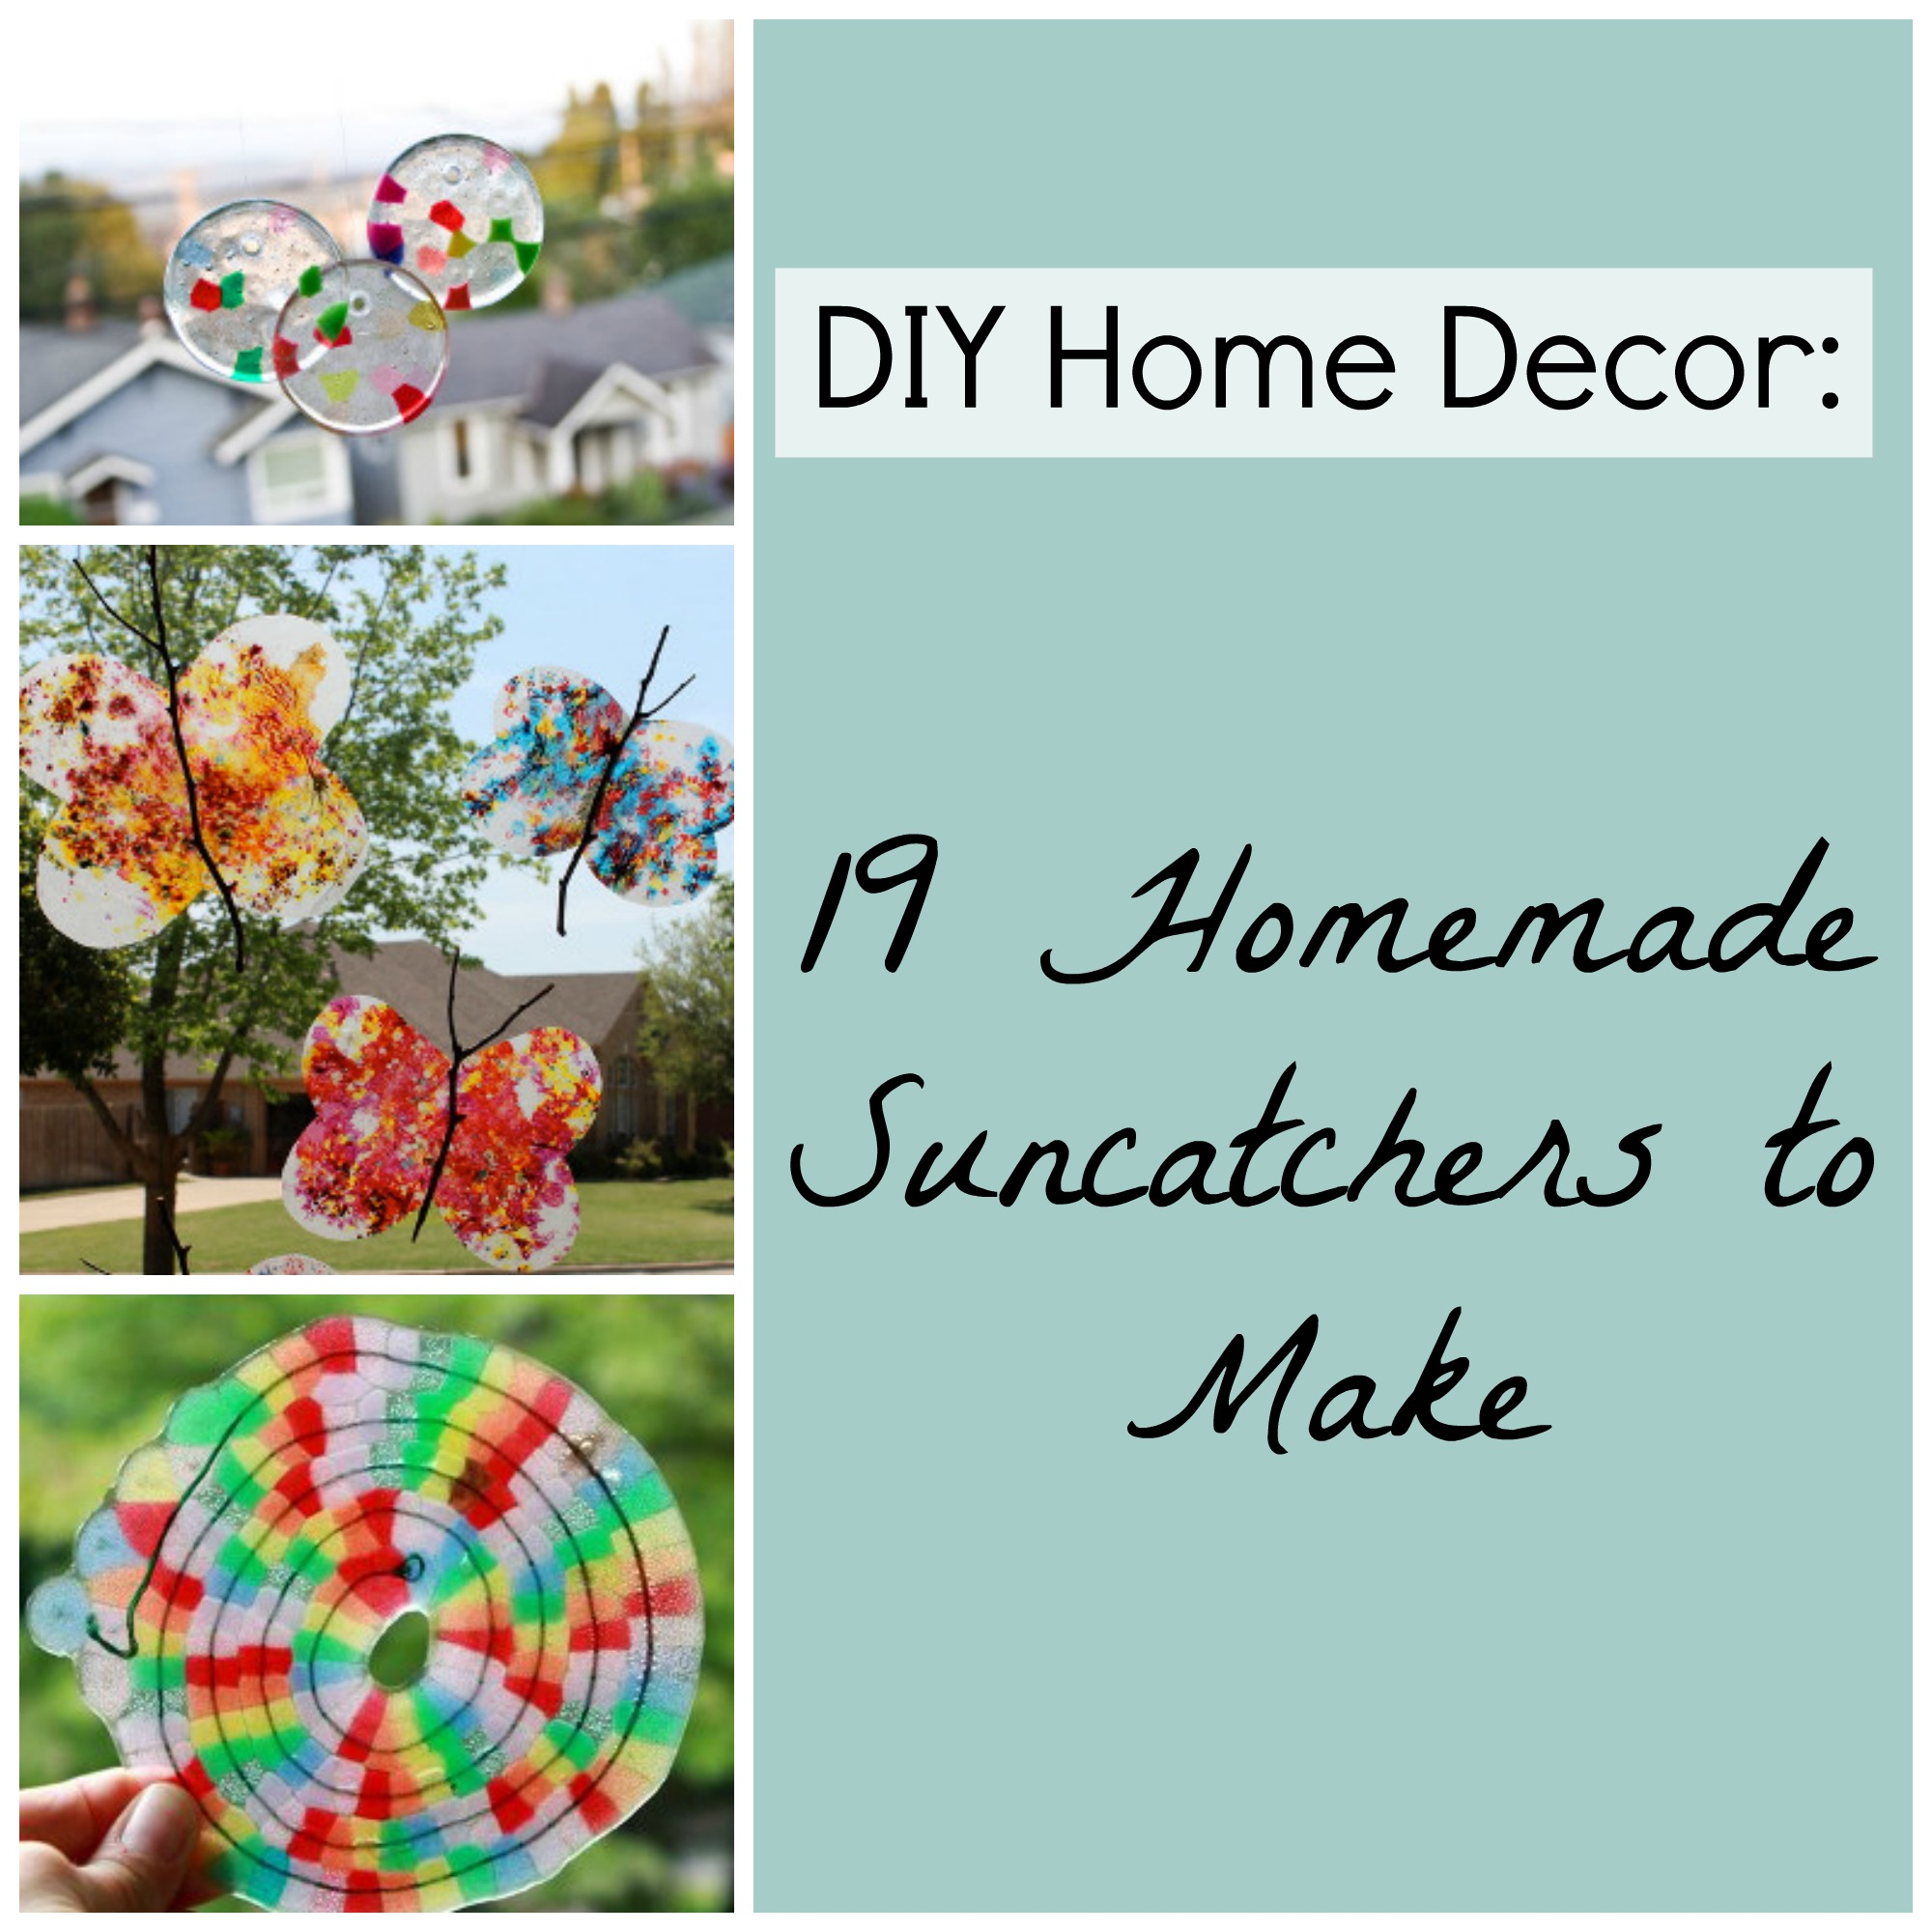 suncatchers blog post DIY Home Decor: 19 Homemade Suncatchers to Make